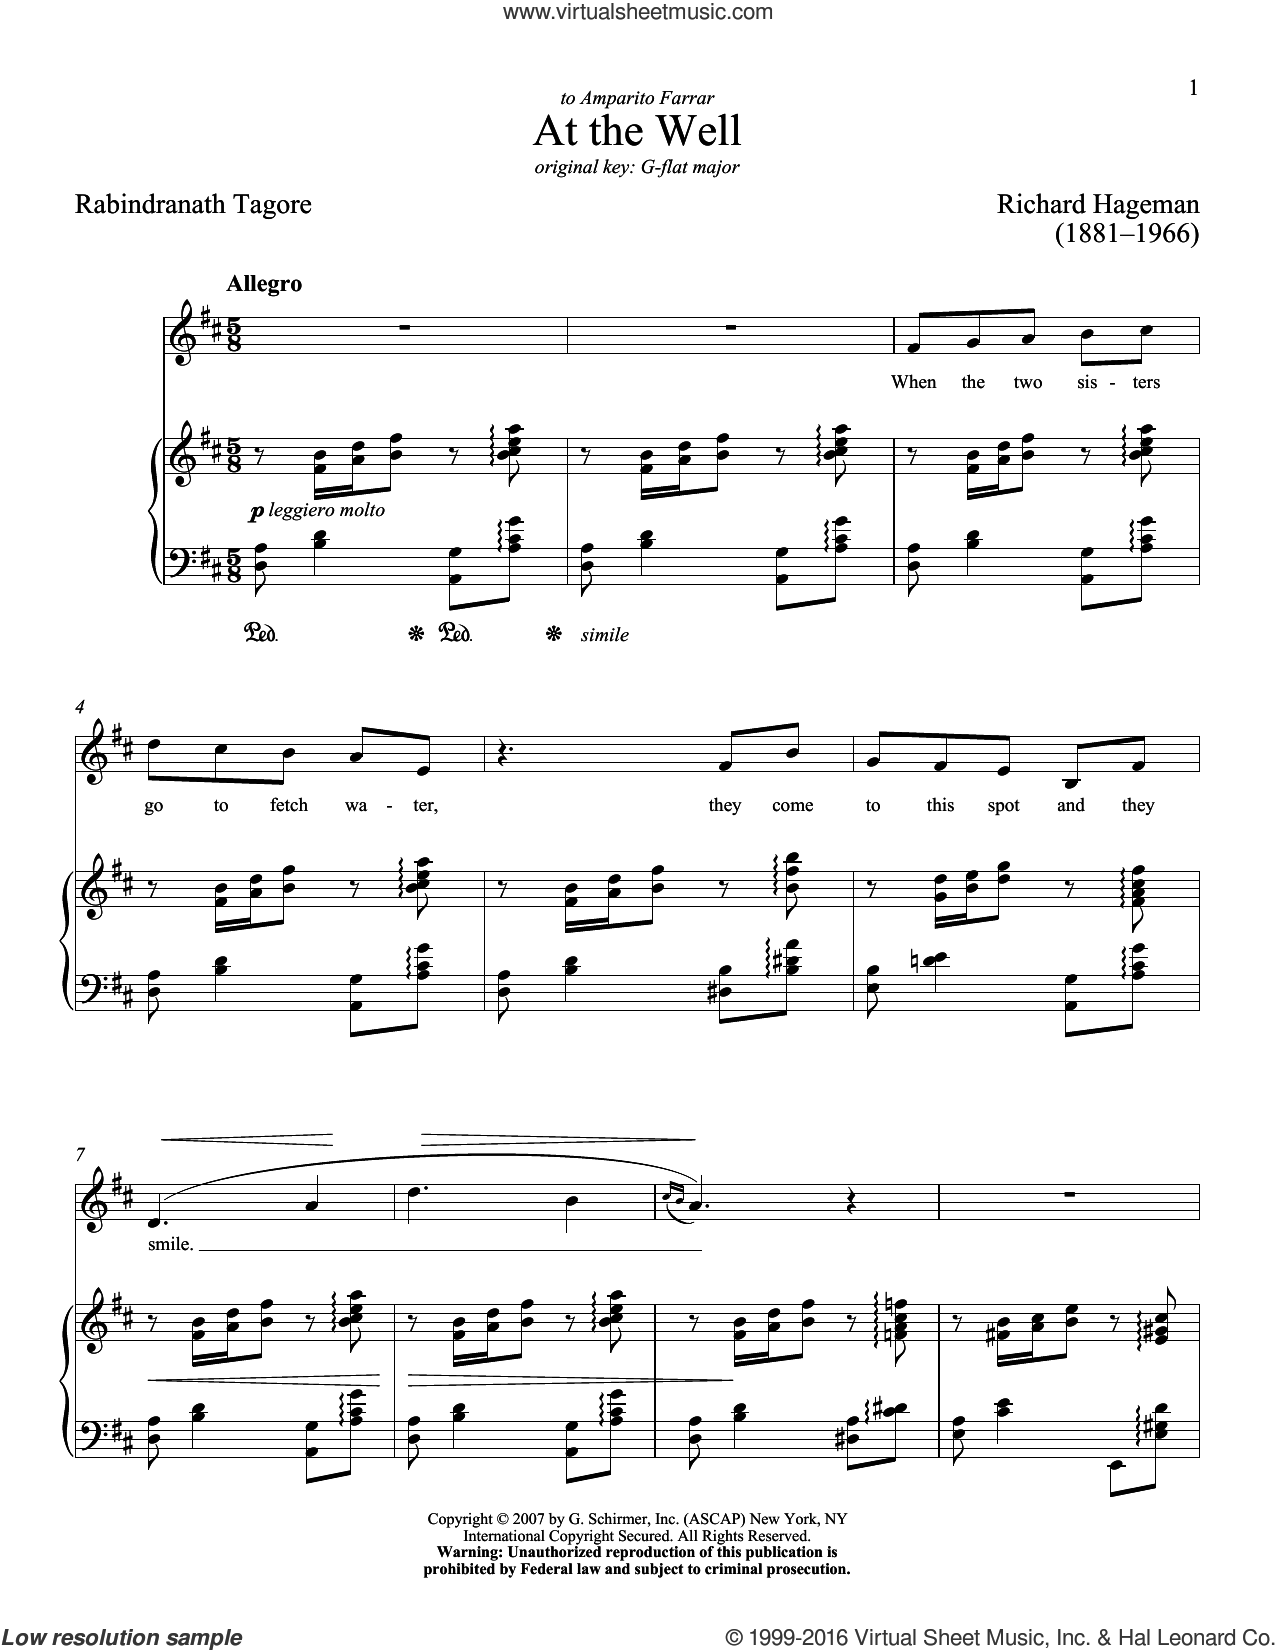 At The Well sheet music for voice and piano (Low ) by Richard Hageman, Richard Walters and Rabindranath Tagore. Score Image Preview.